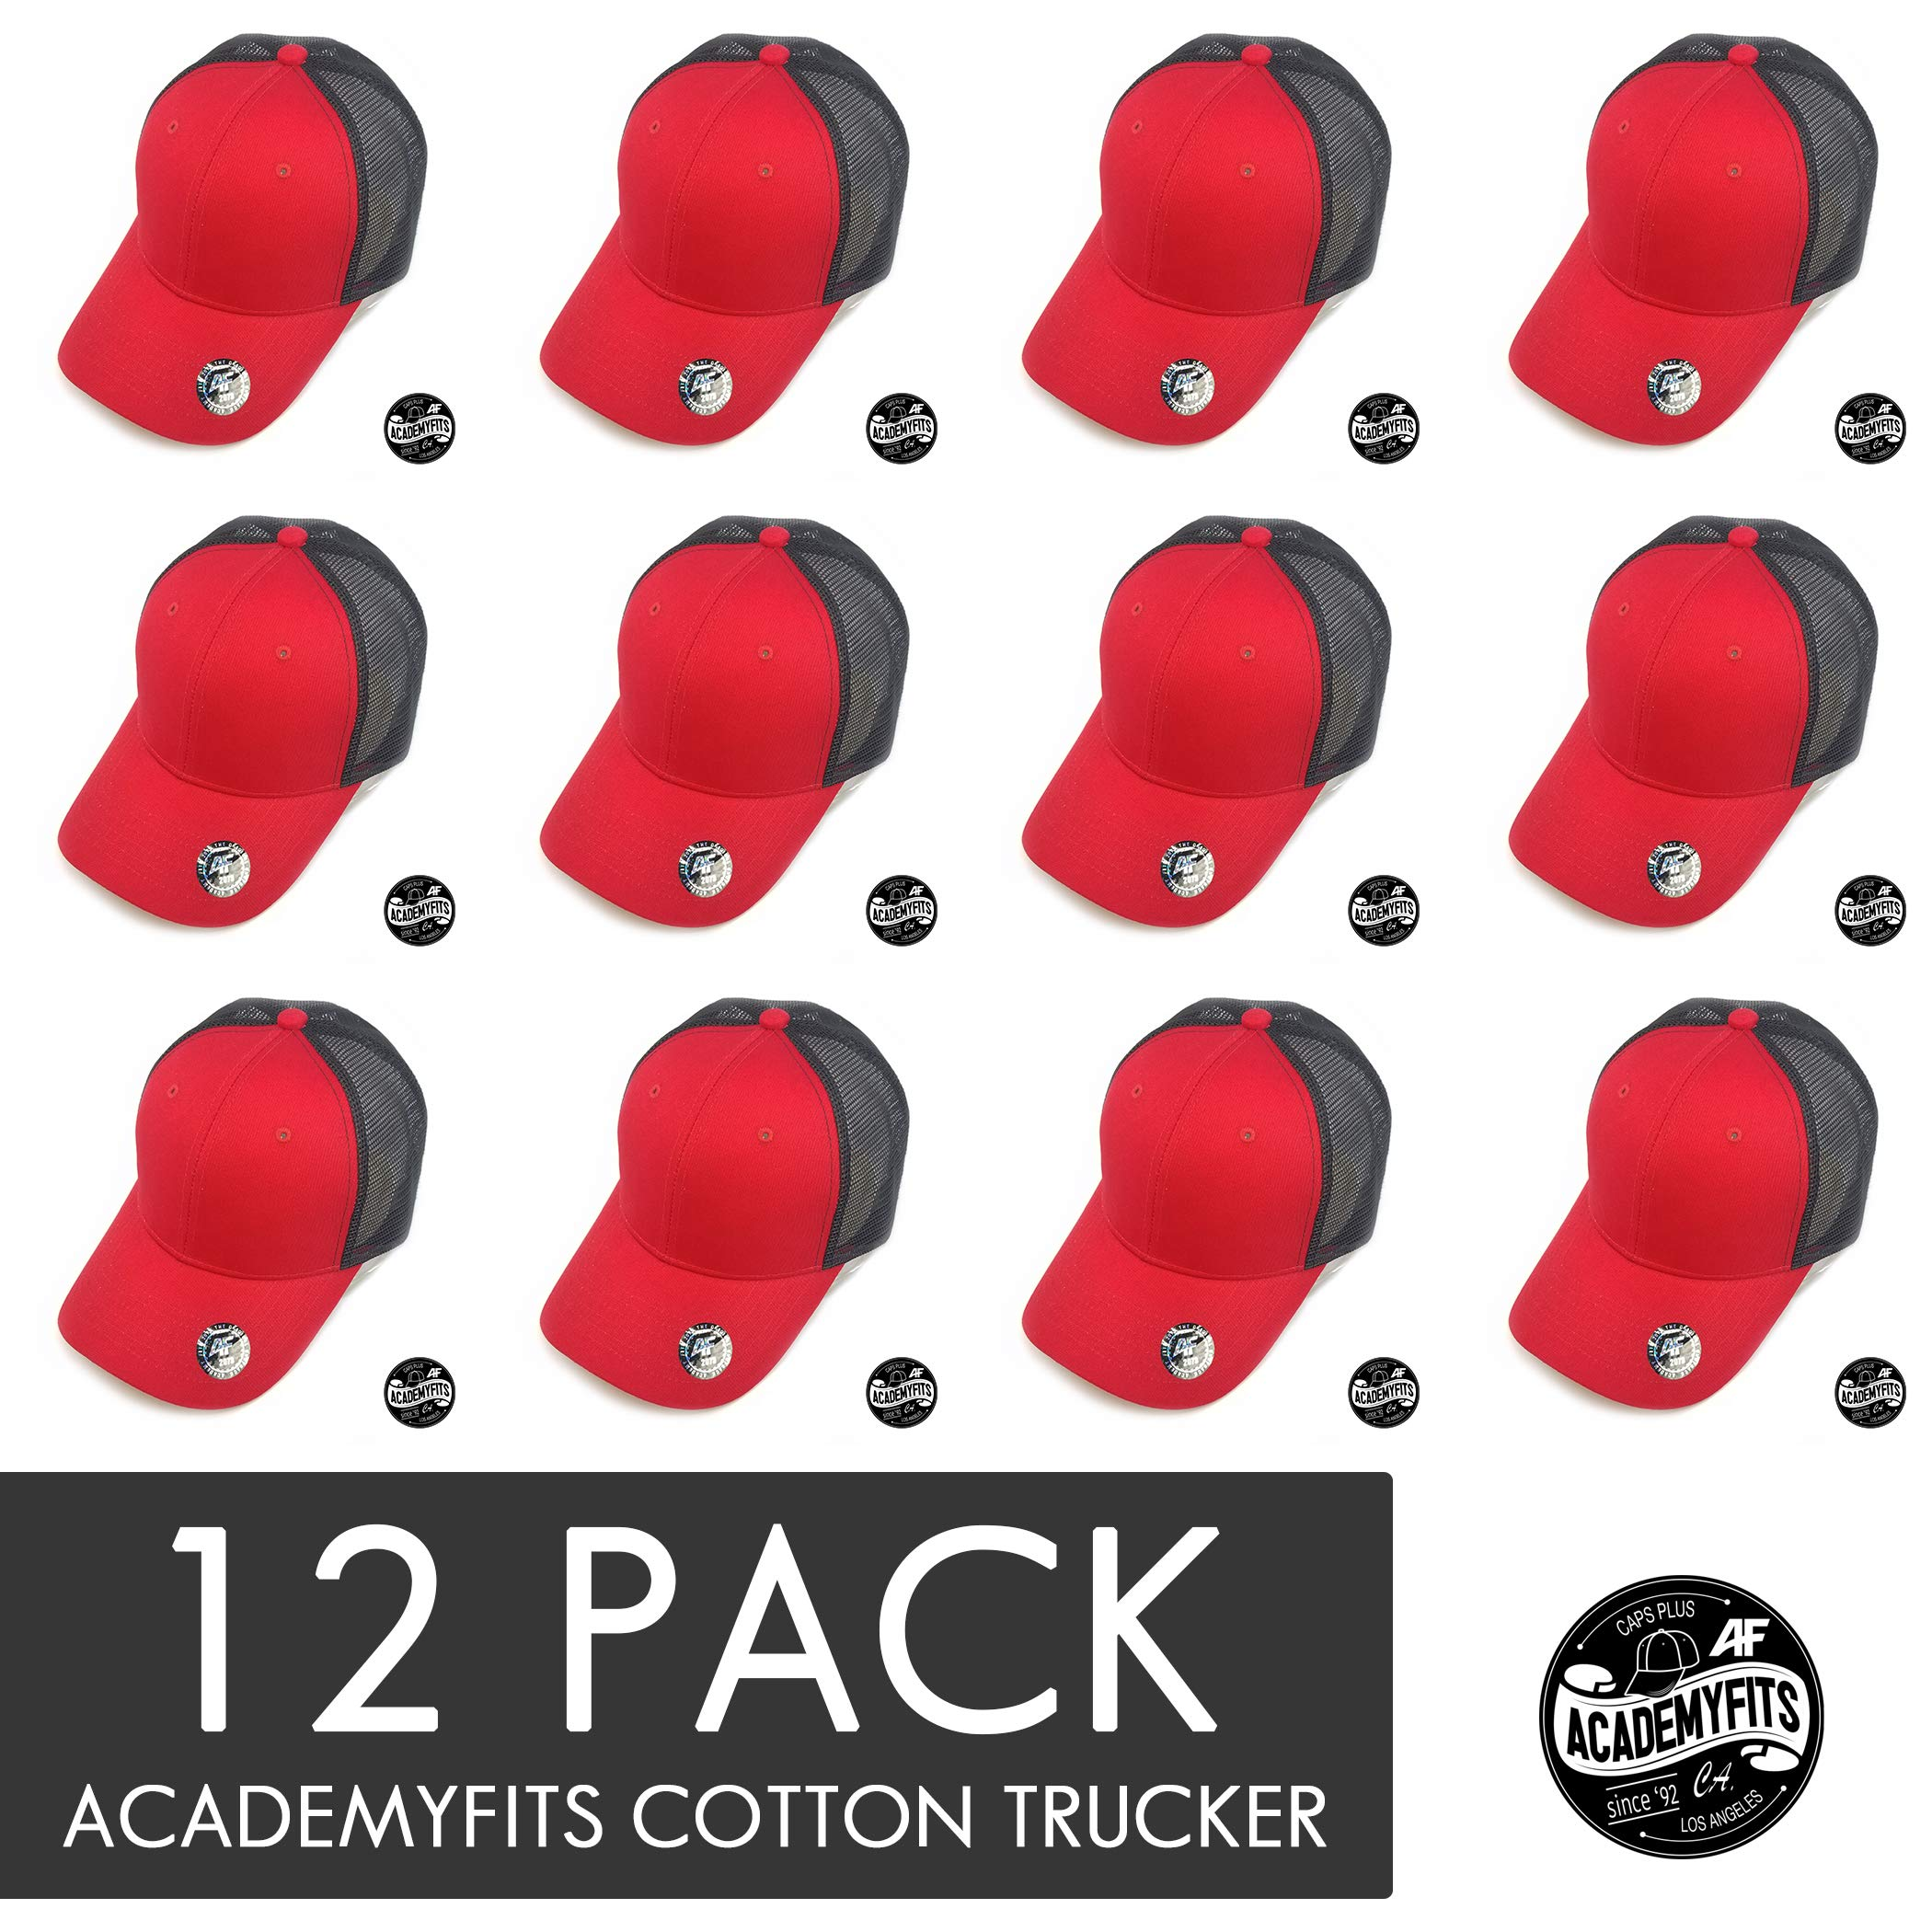 AcademyFits Quality 6 Panel Cotton Trucker Mesh Snapback Curve Visor Men Women Unisex Wholesale 12 Pack Lot (Red/Black (12))